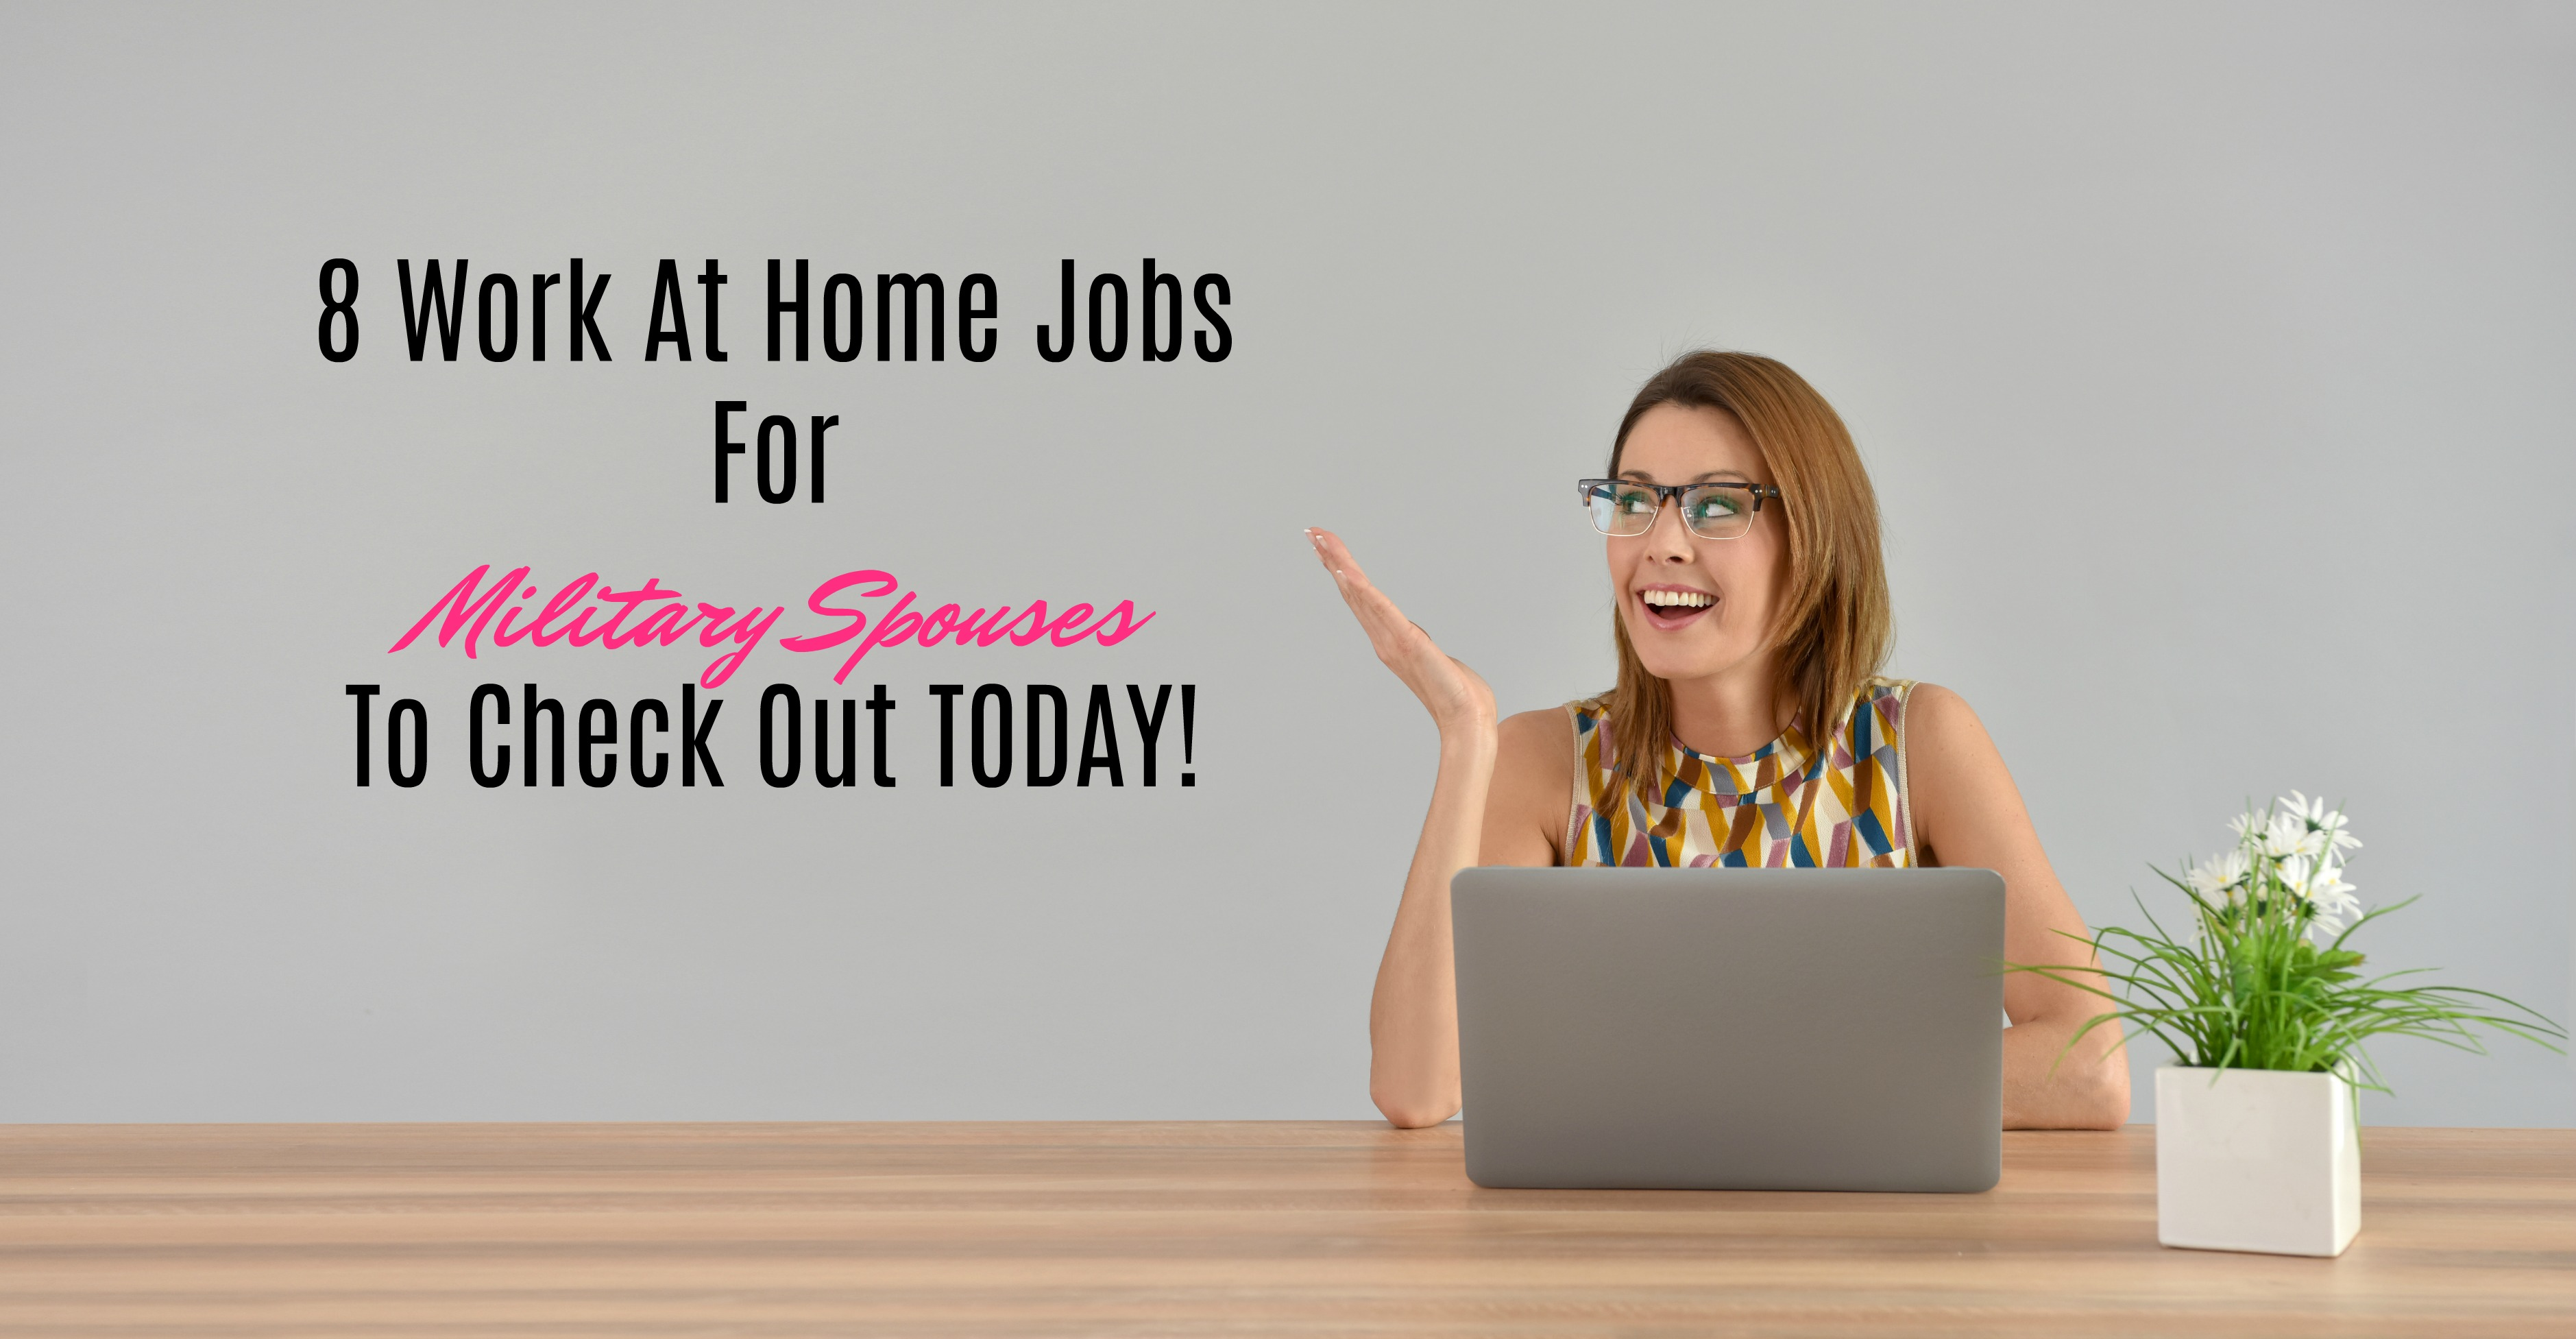 8 Work At Home Jobs For Military Spouses To Check Out TODAY!